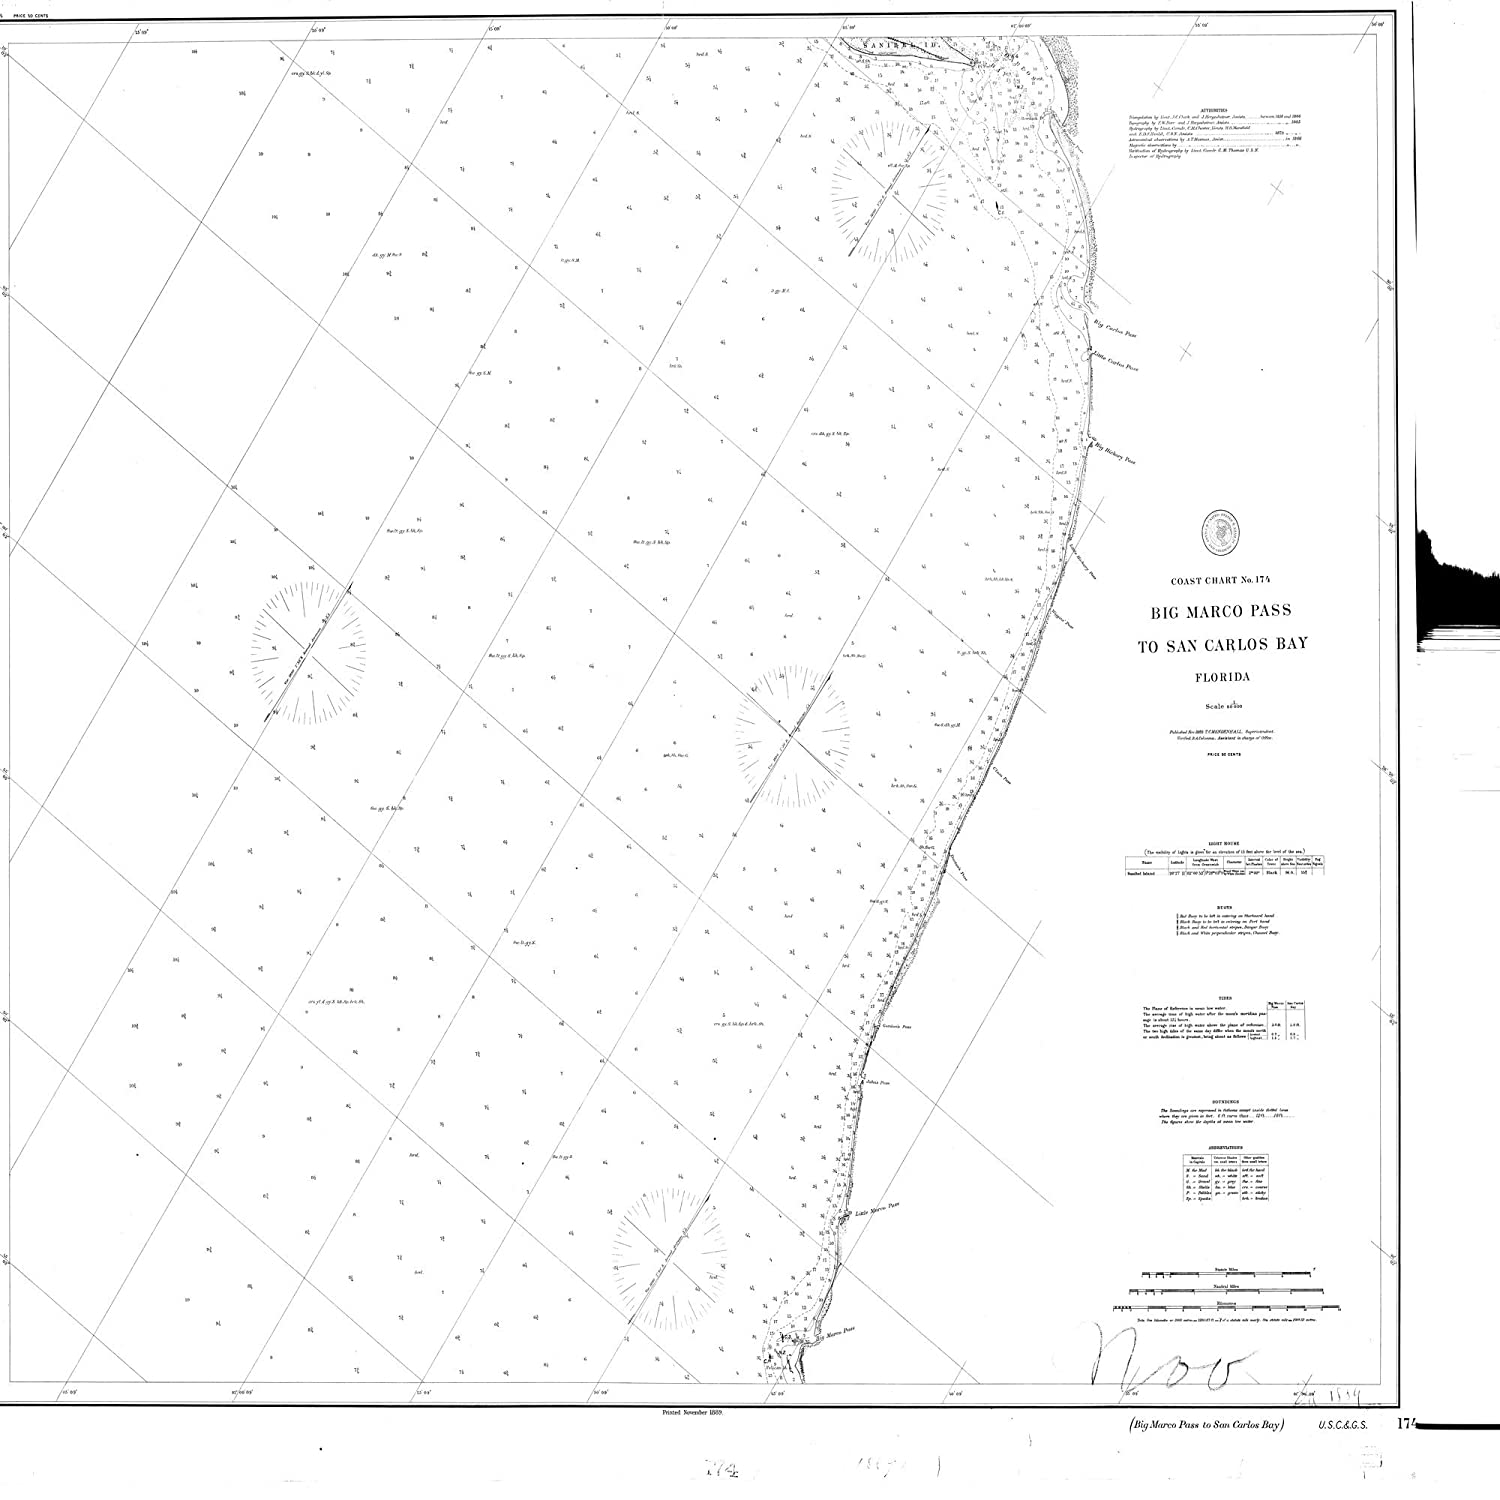 Amazon.com: Vintography 8 x 12 inch 1889 US Old Nautical map ... on biome drawing, 50 states drawing, alabama drawing, arizona drawing, map of asia drawing, united states drawing, earth map drawing, walmart drawing, africa map drawing, michigan drawing, mississippi drawing, bob ross drawing, georgia drawing, wisconsin drawing, big family drawing, europe map drawing, oregon drawing, canada drawing, virginia drawing, russia map drawing,